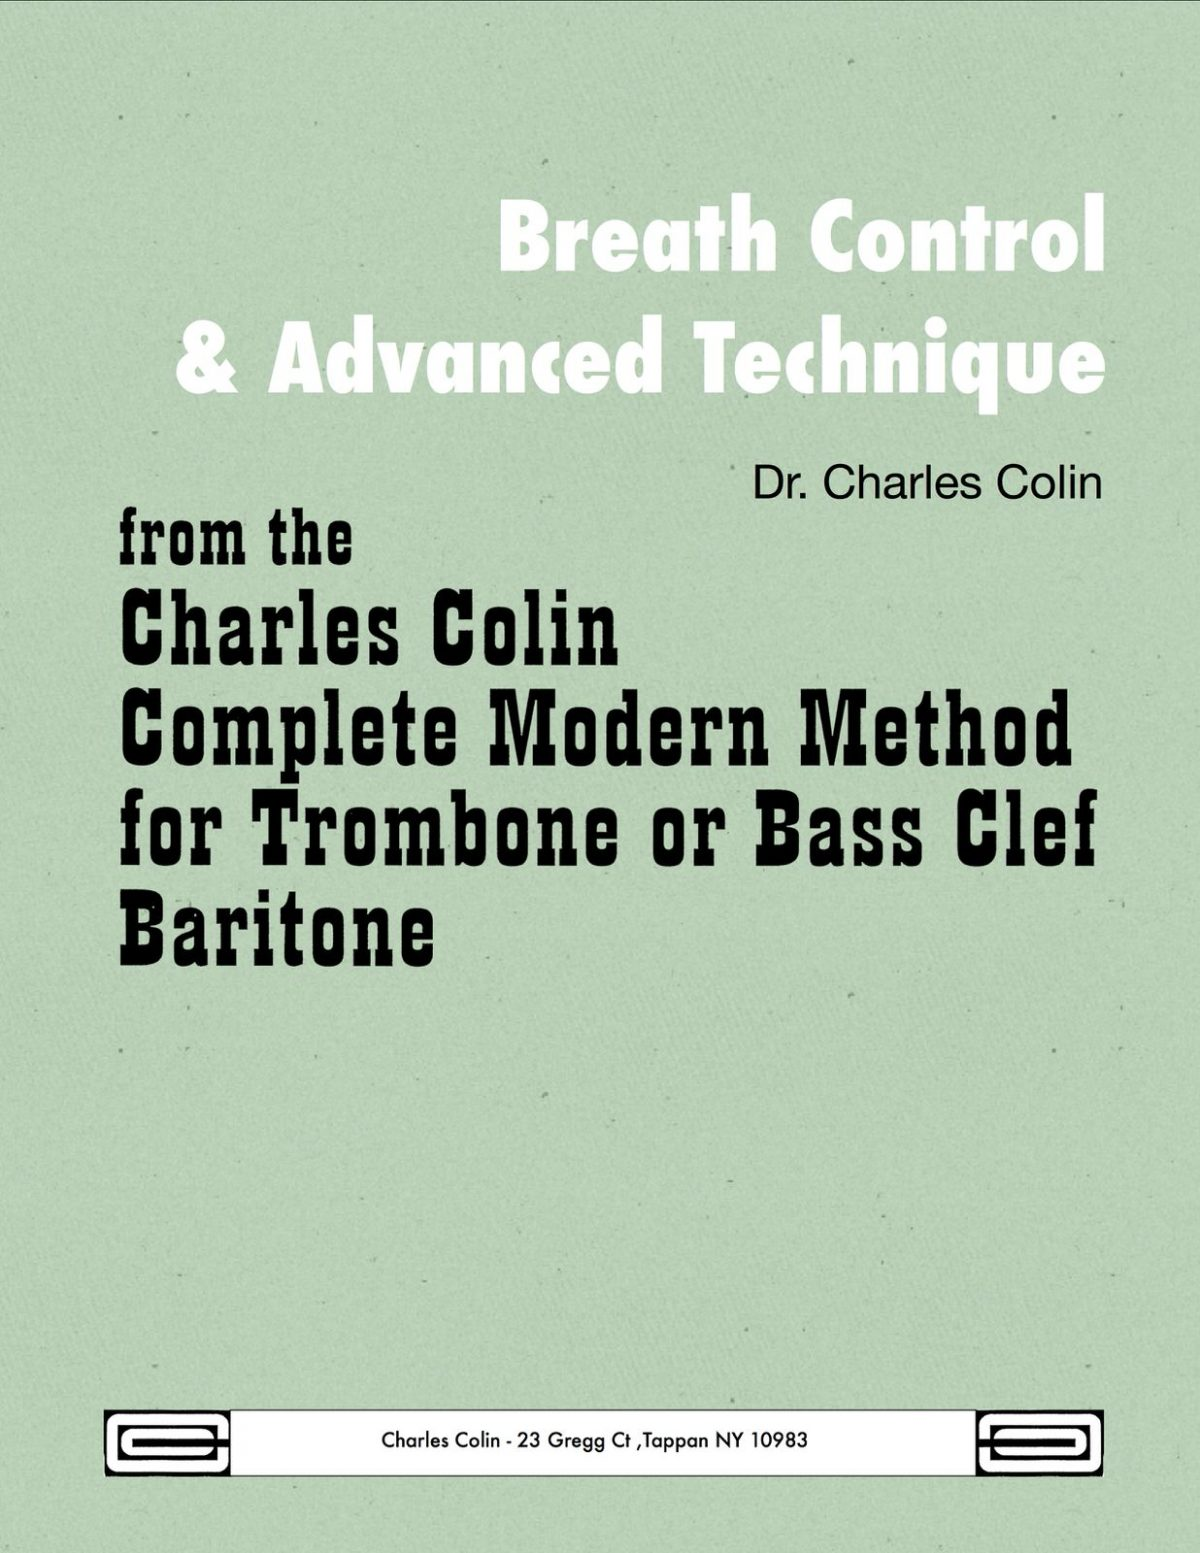 Colin, Breath Control and Advanced Technique-p01